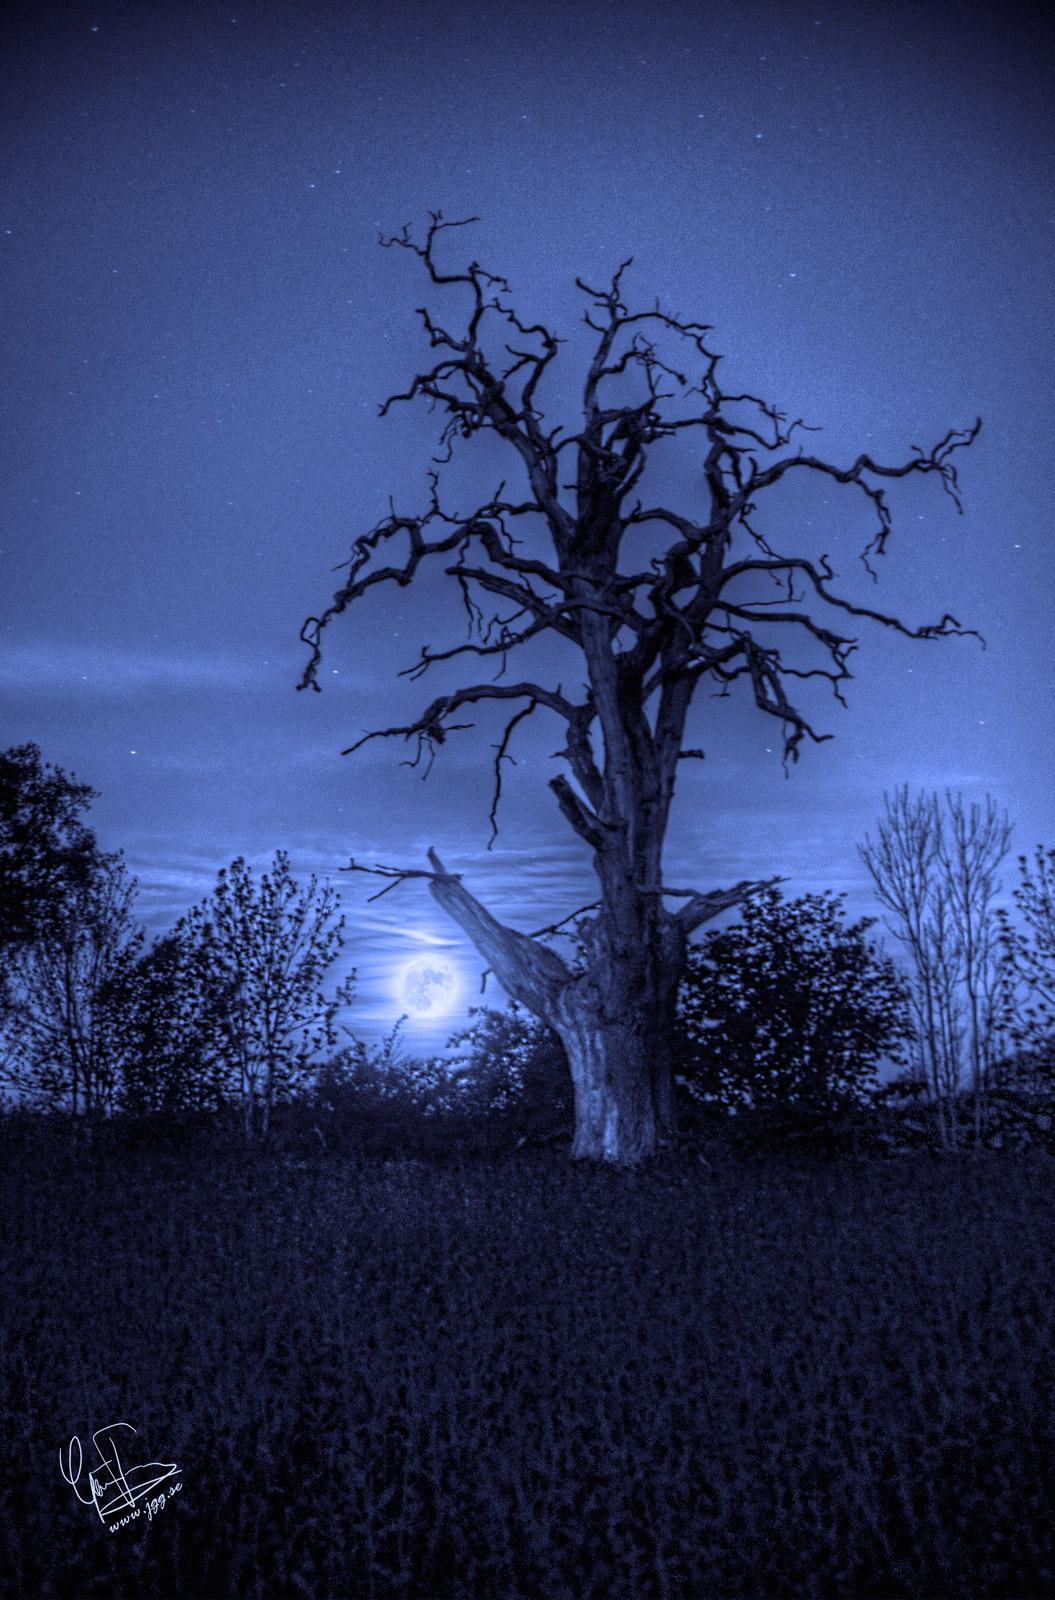 In the blue moonlight by Junglegeorge